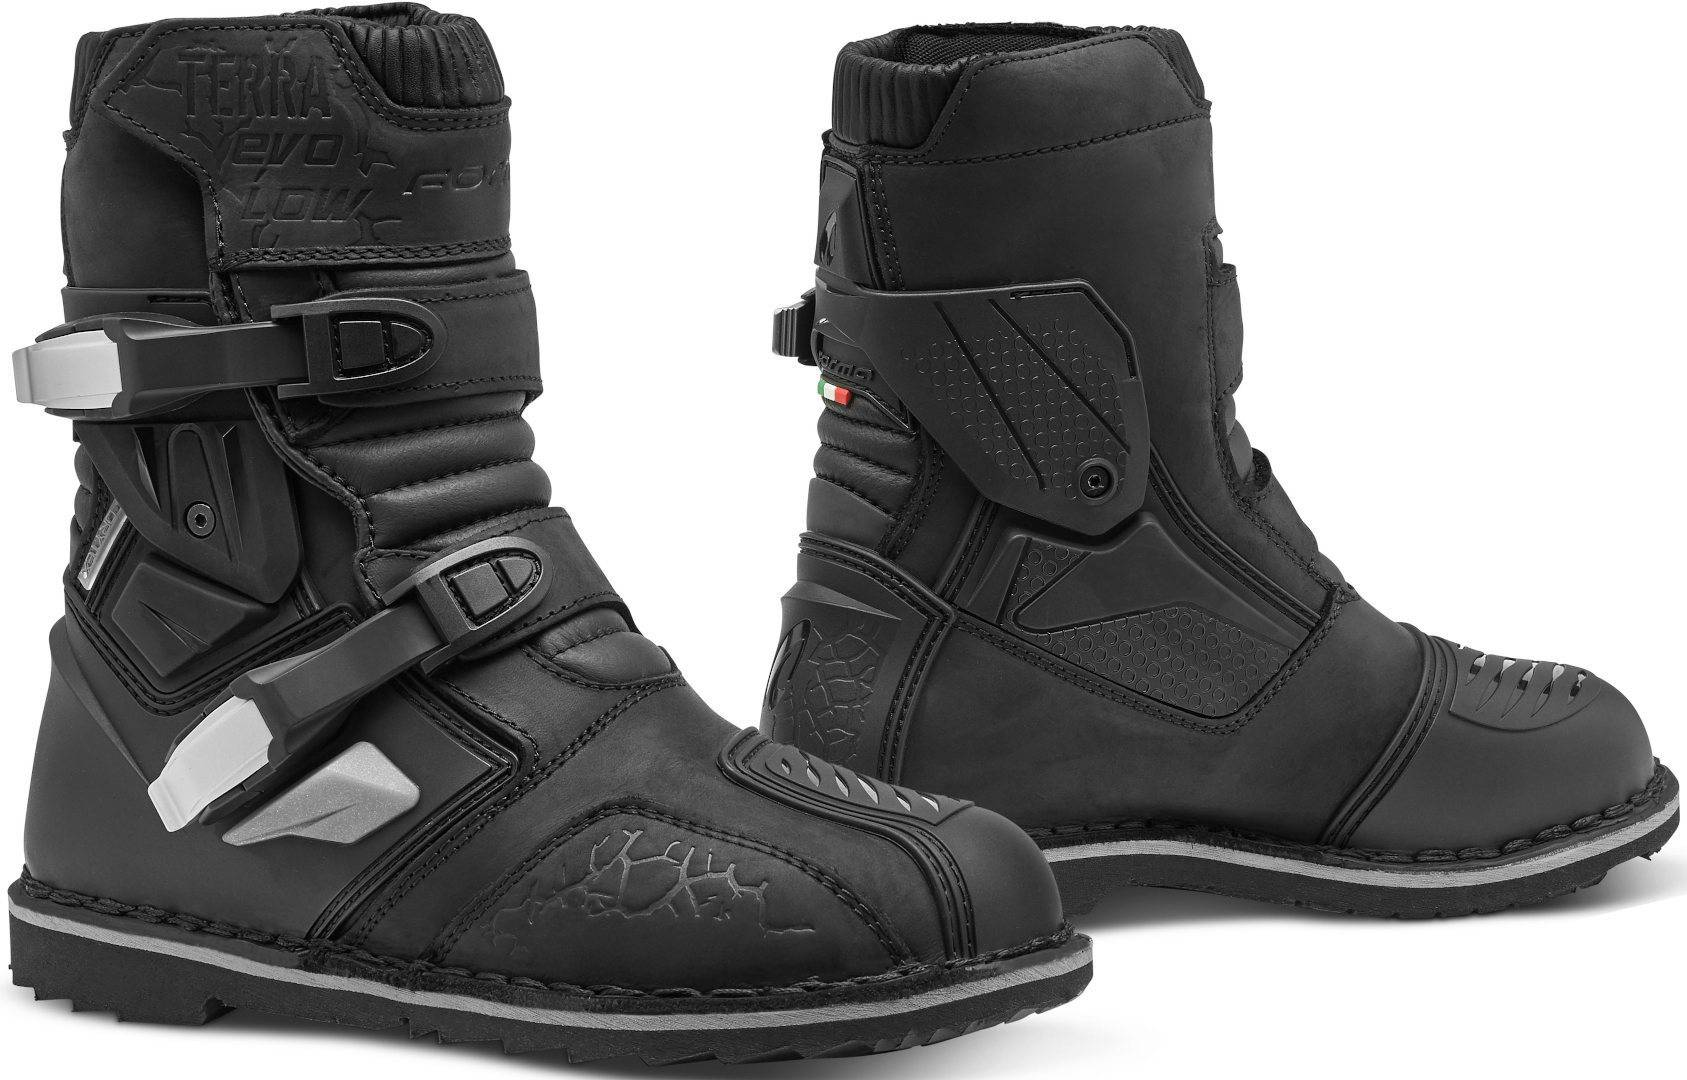 Forma Terra Evo Low Motorcycle Boots  - Black - Size: 39